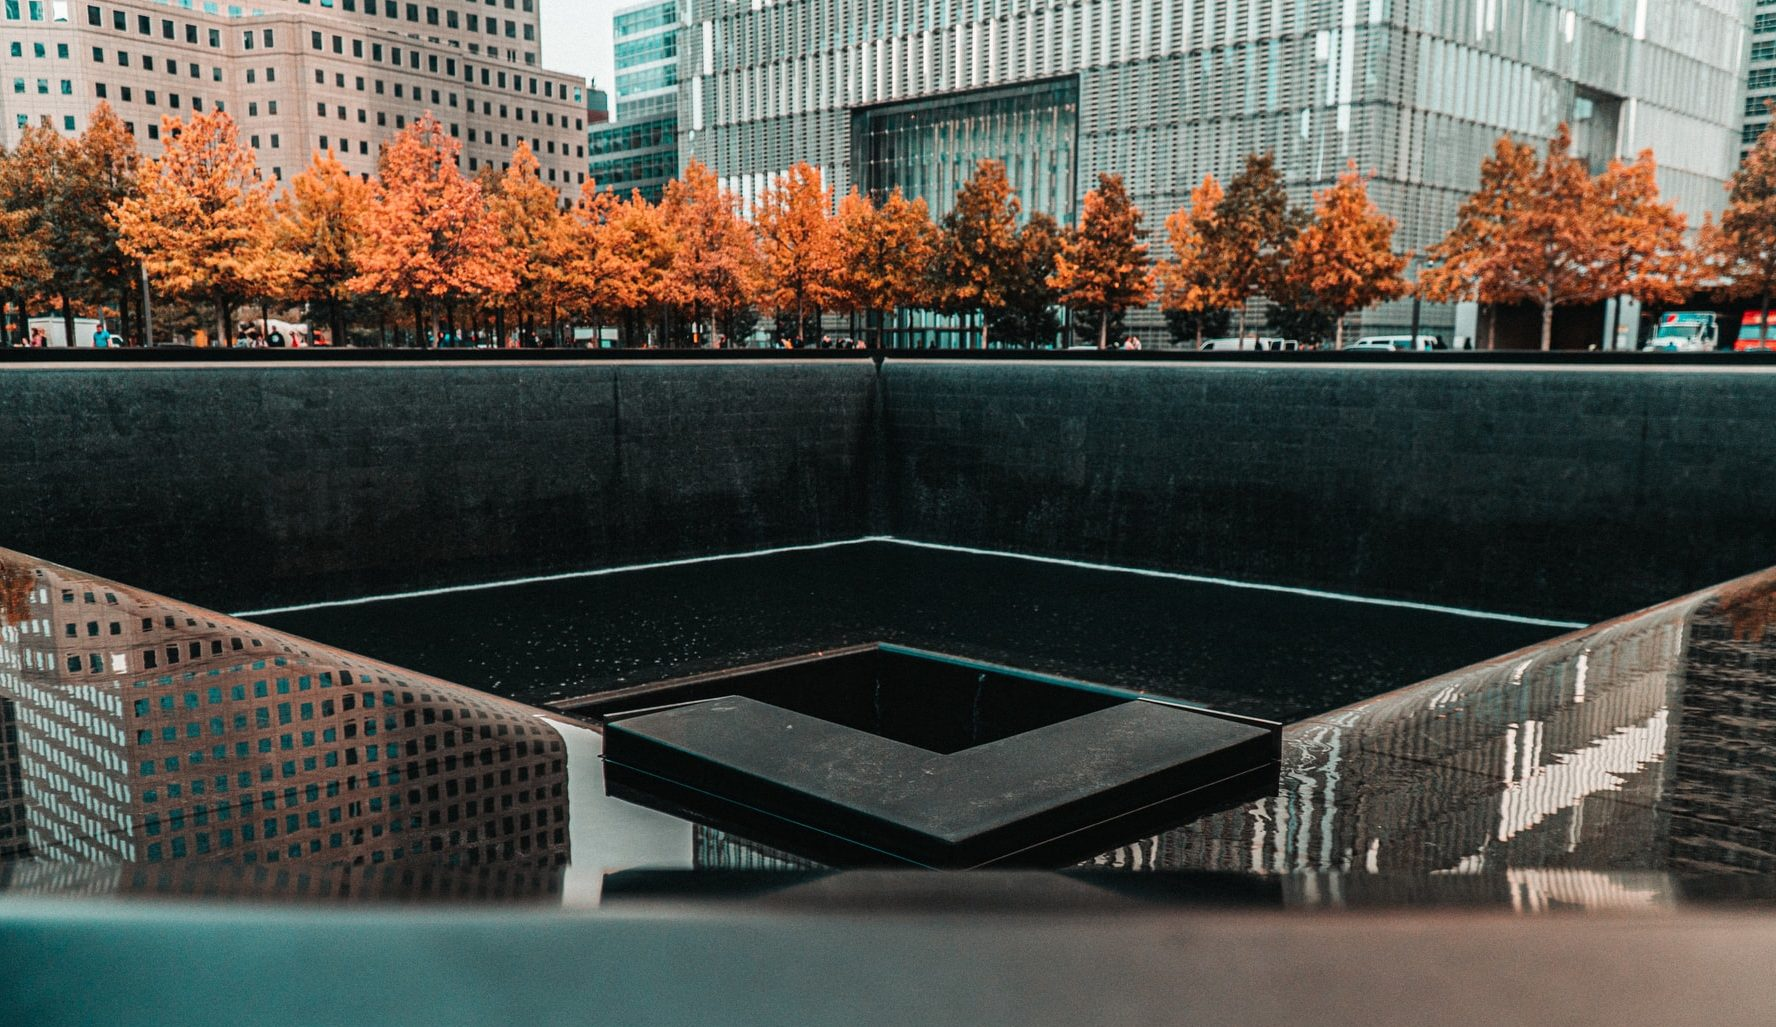 9/11 Memorial fountain at Ground Zero NYC